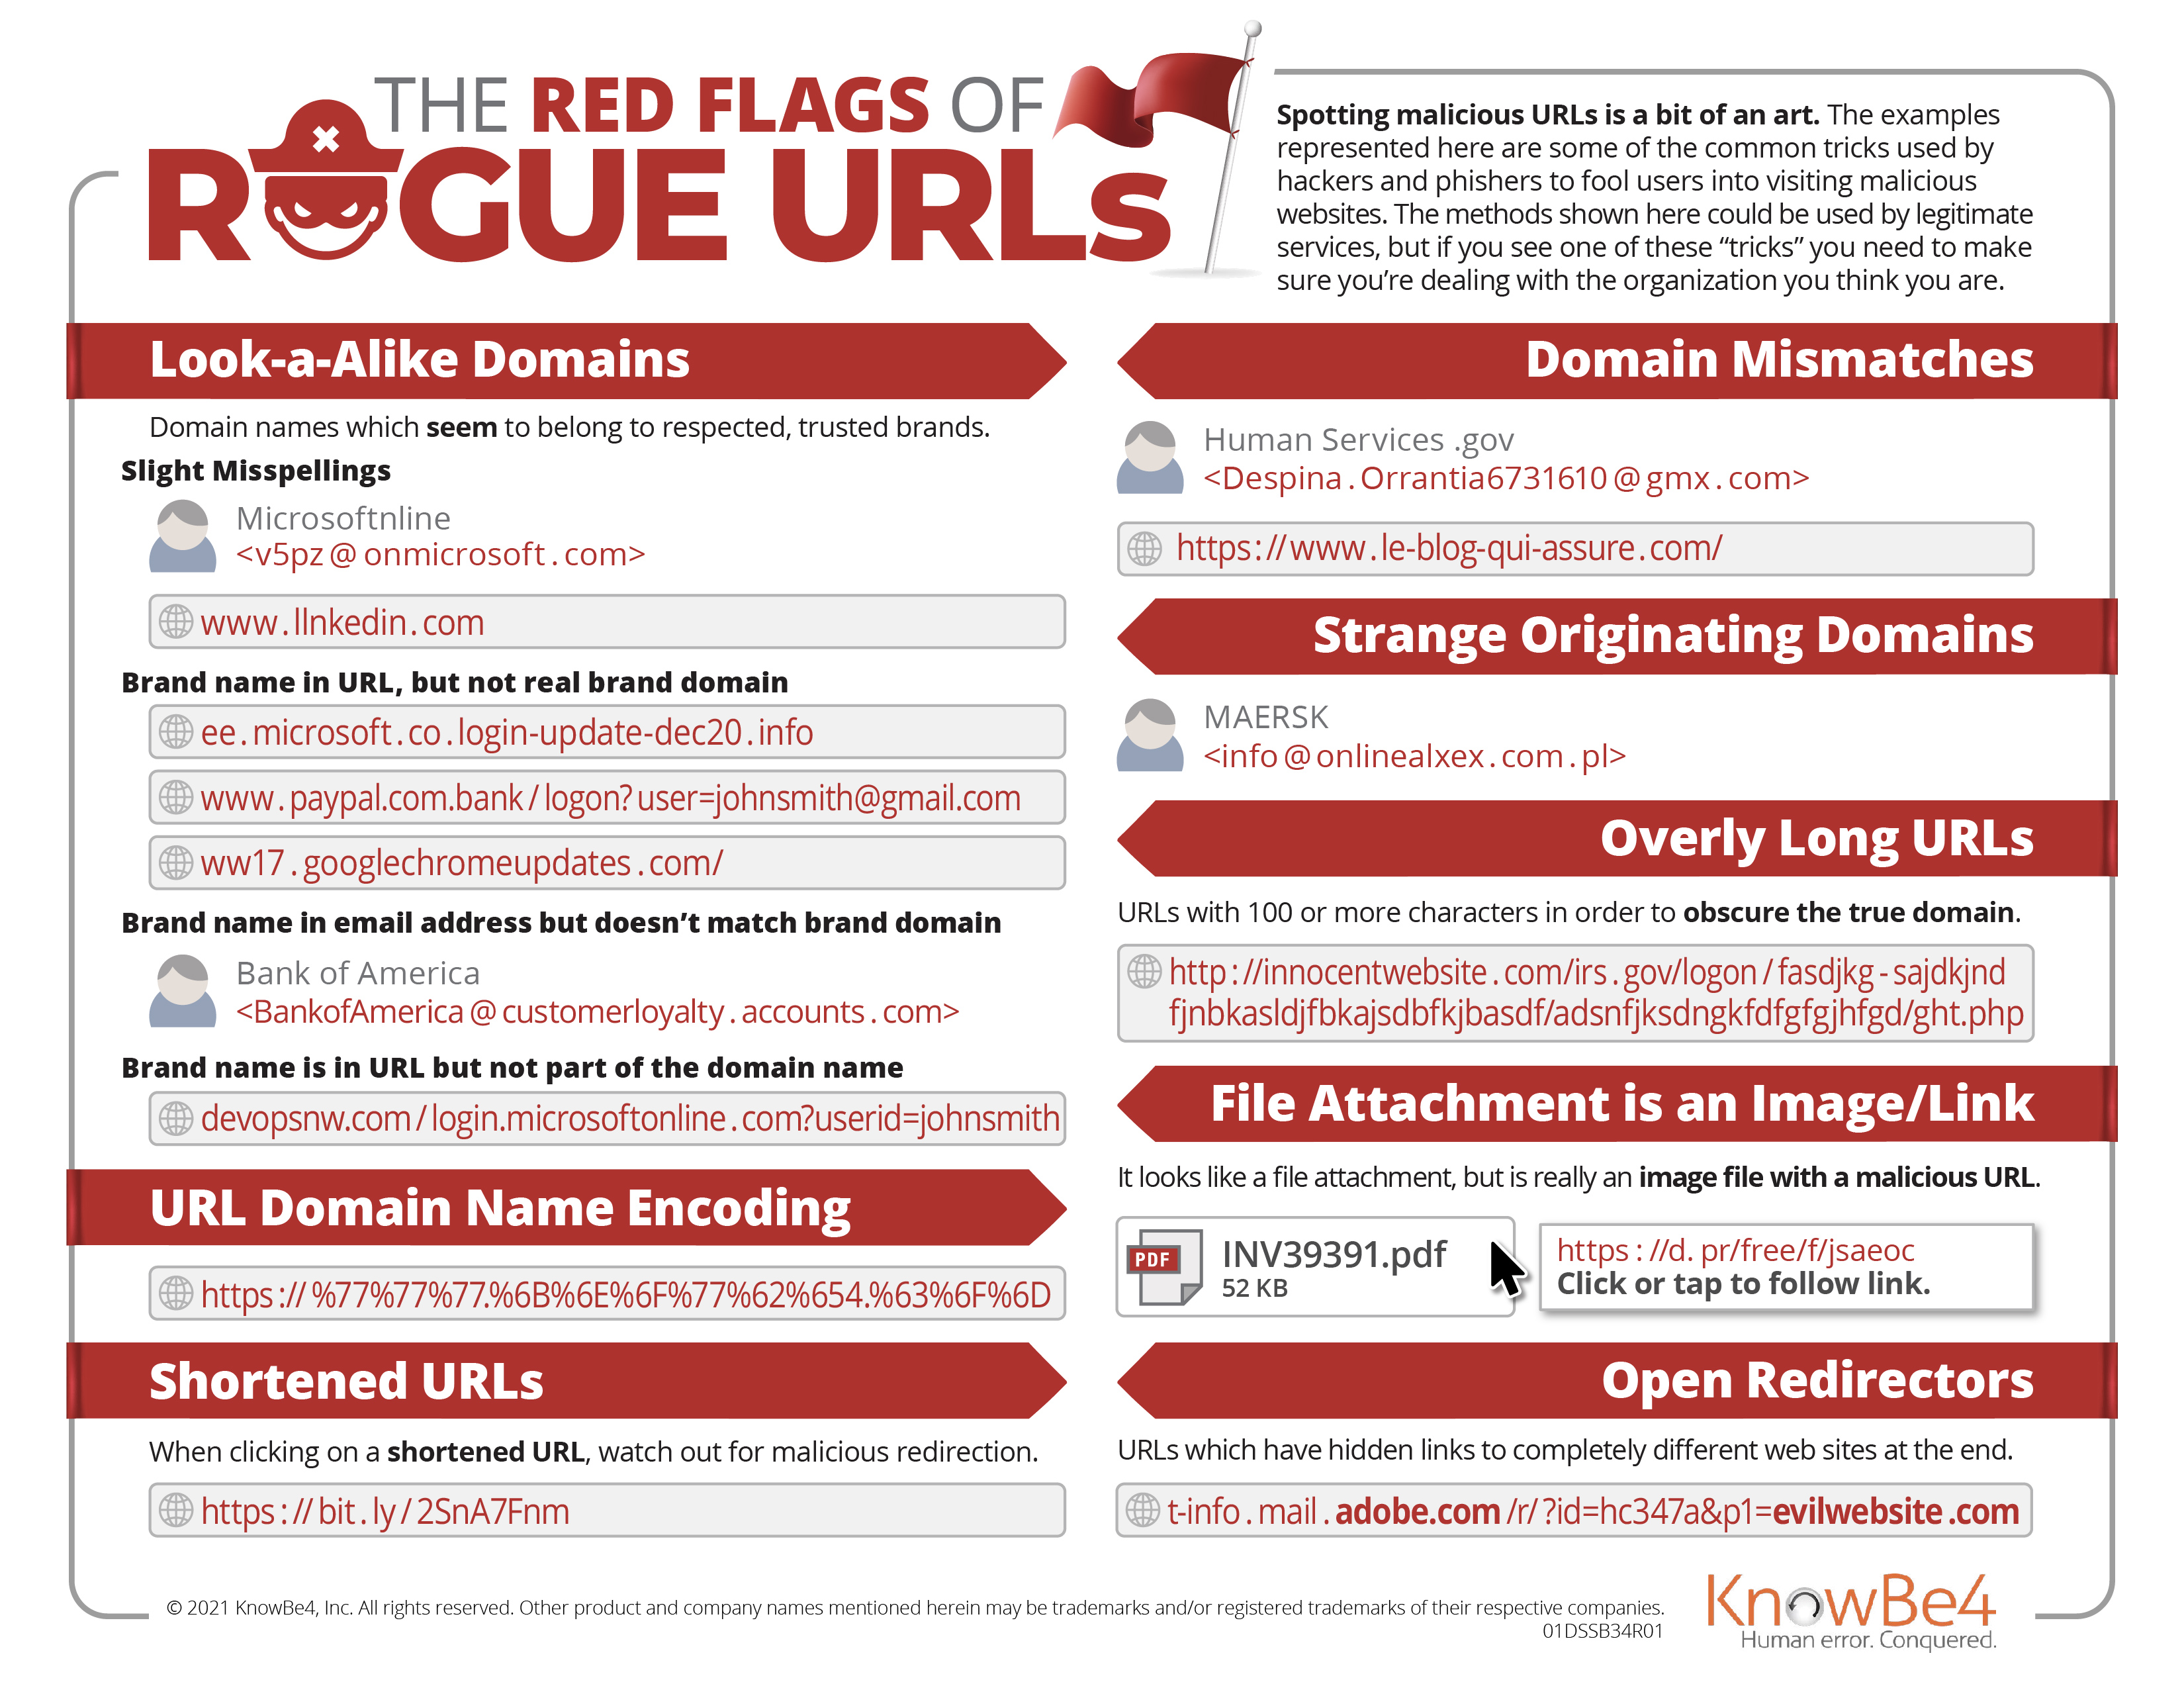 Red Flags of Rogue URLs